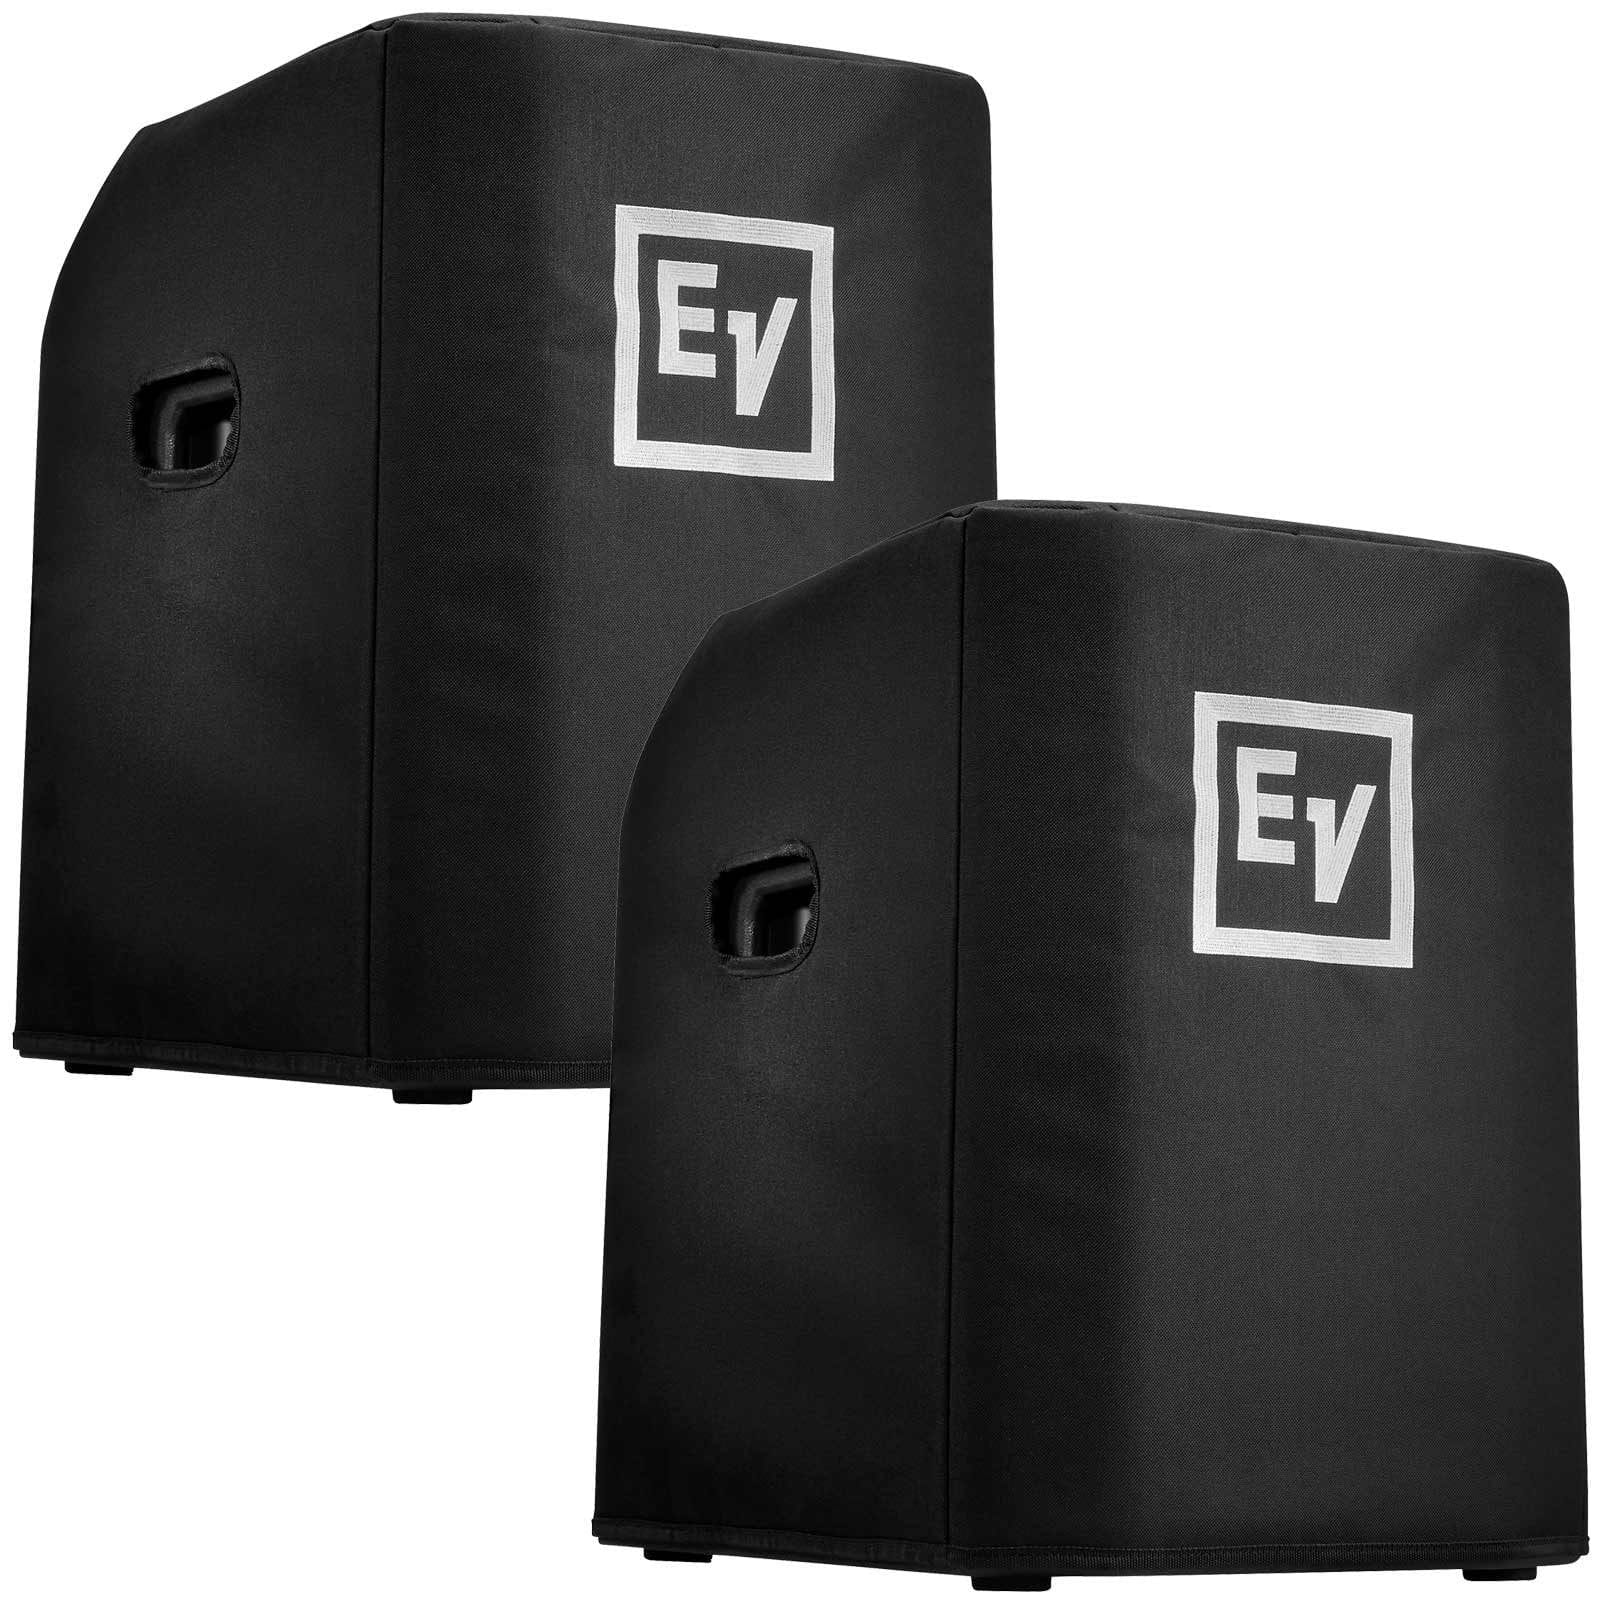 electro-voice-evolve50-subcvr-subwoofer-covers-duo-package-4cb